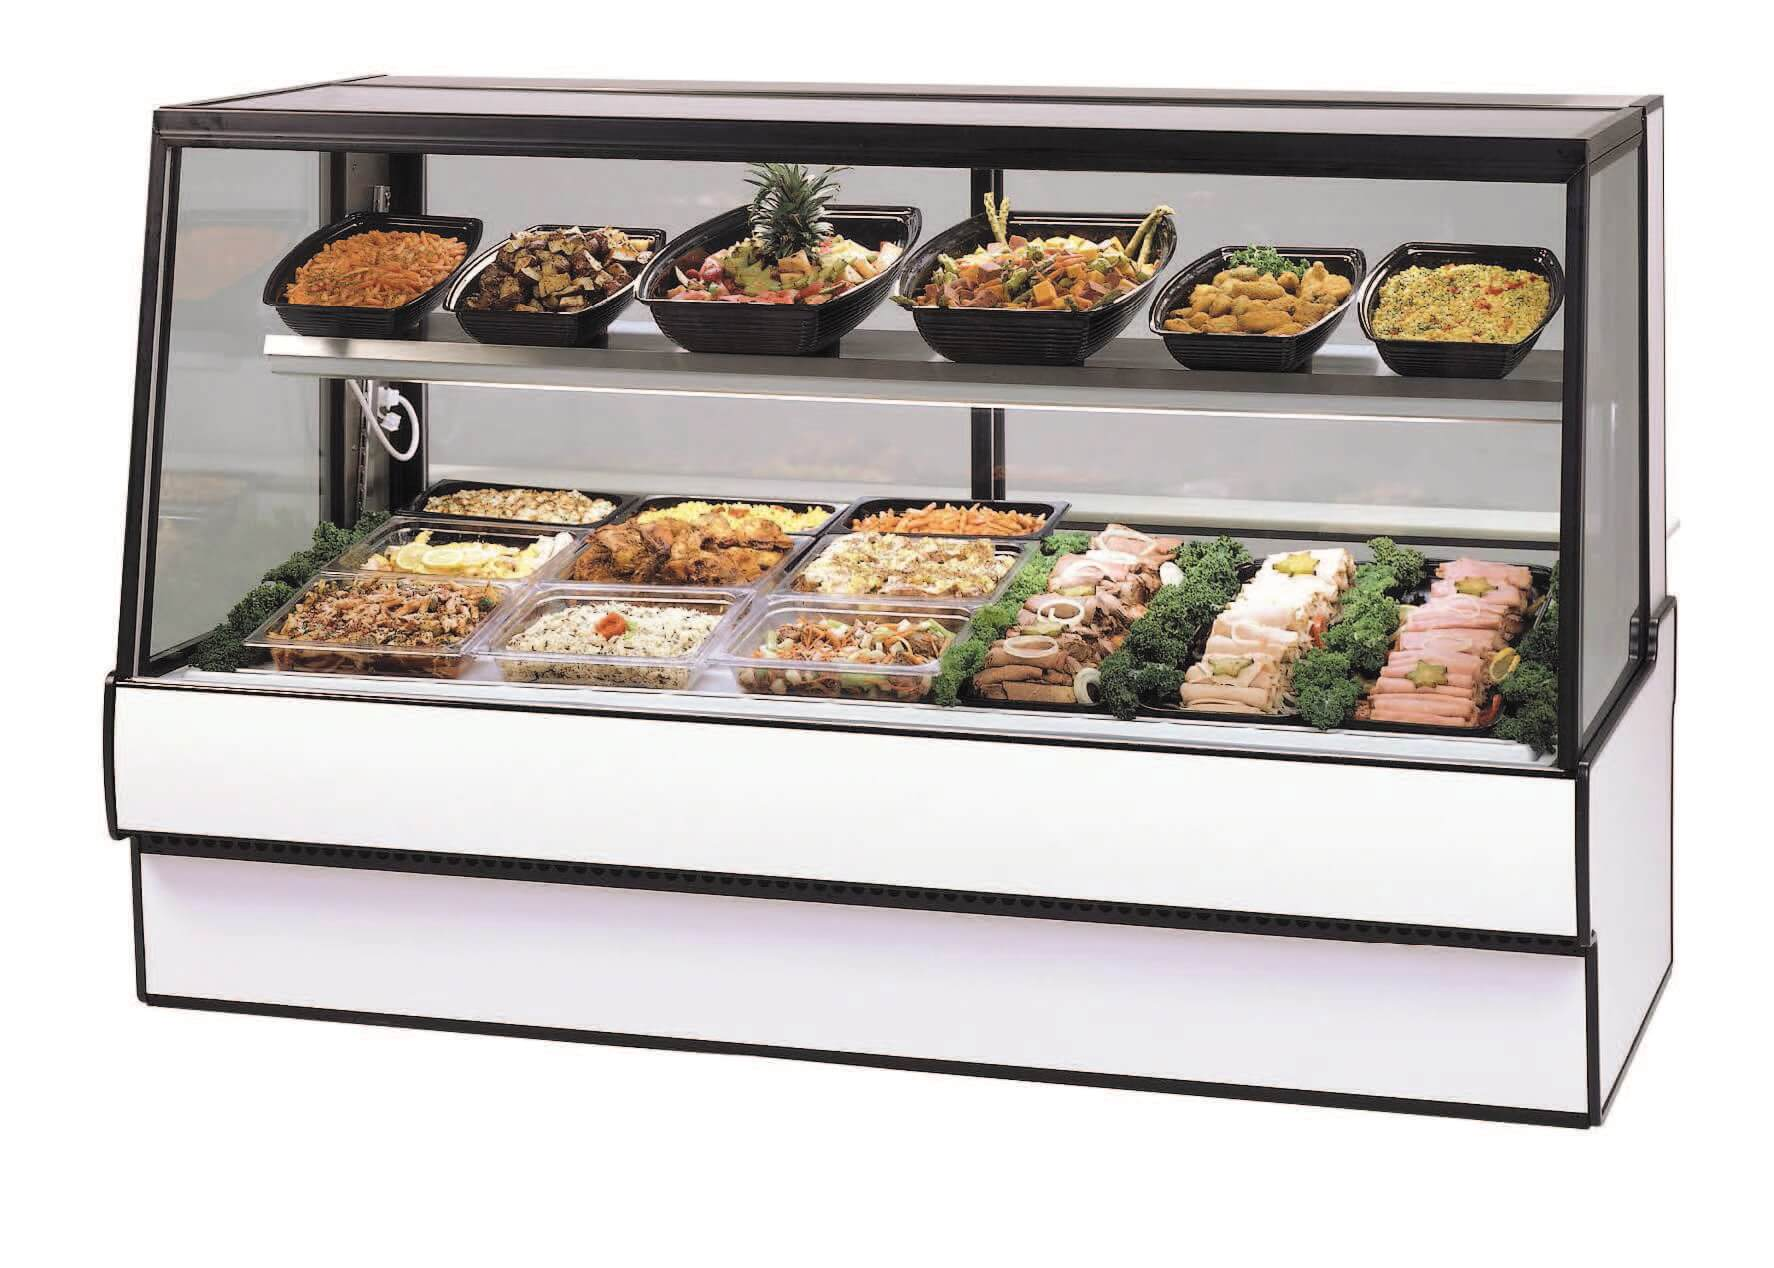 sgr3648cd-high-volume-refrigerated-deli-case[1]